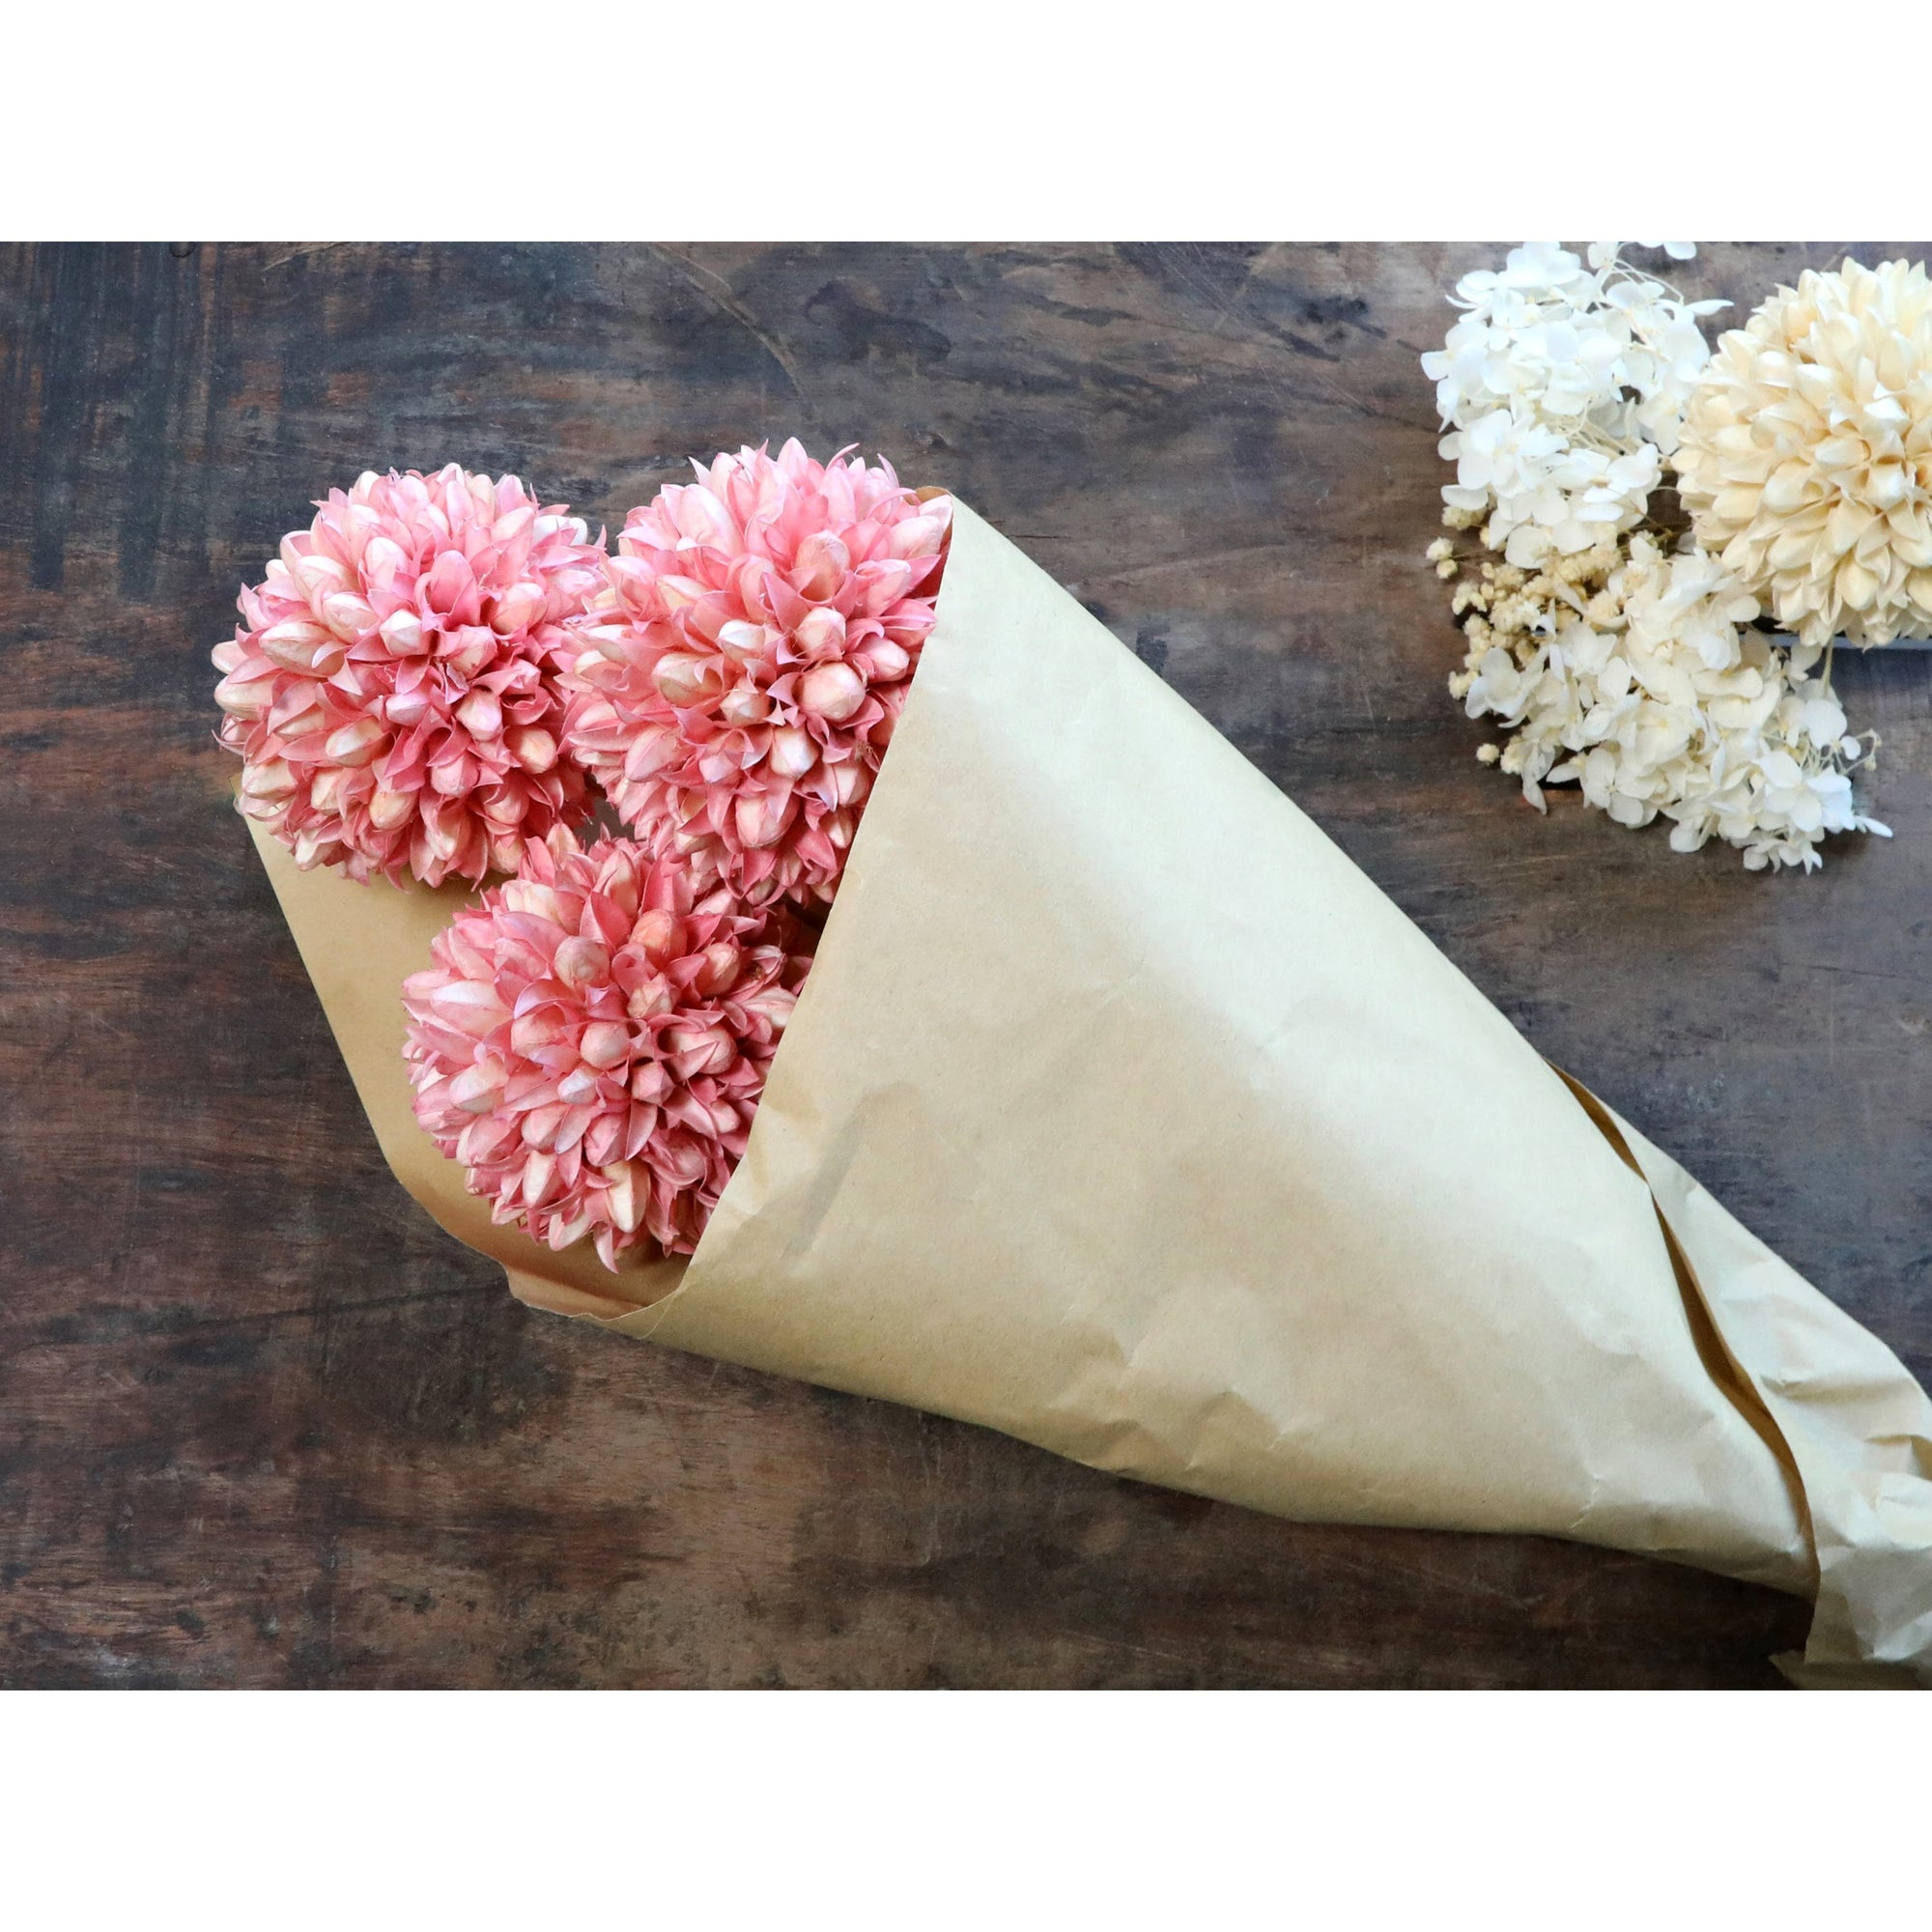 Chic-Antique-Fleur-Dried-Snowball-FlowersPink